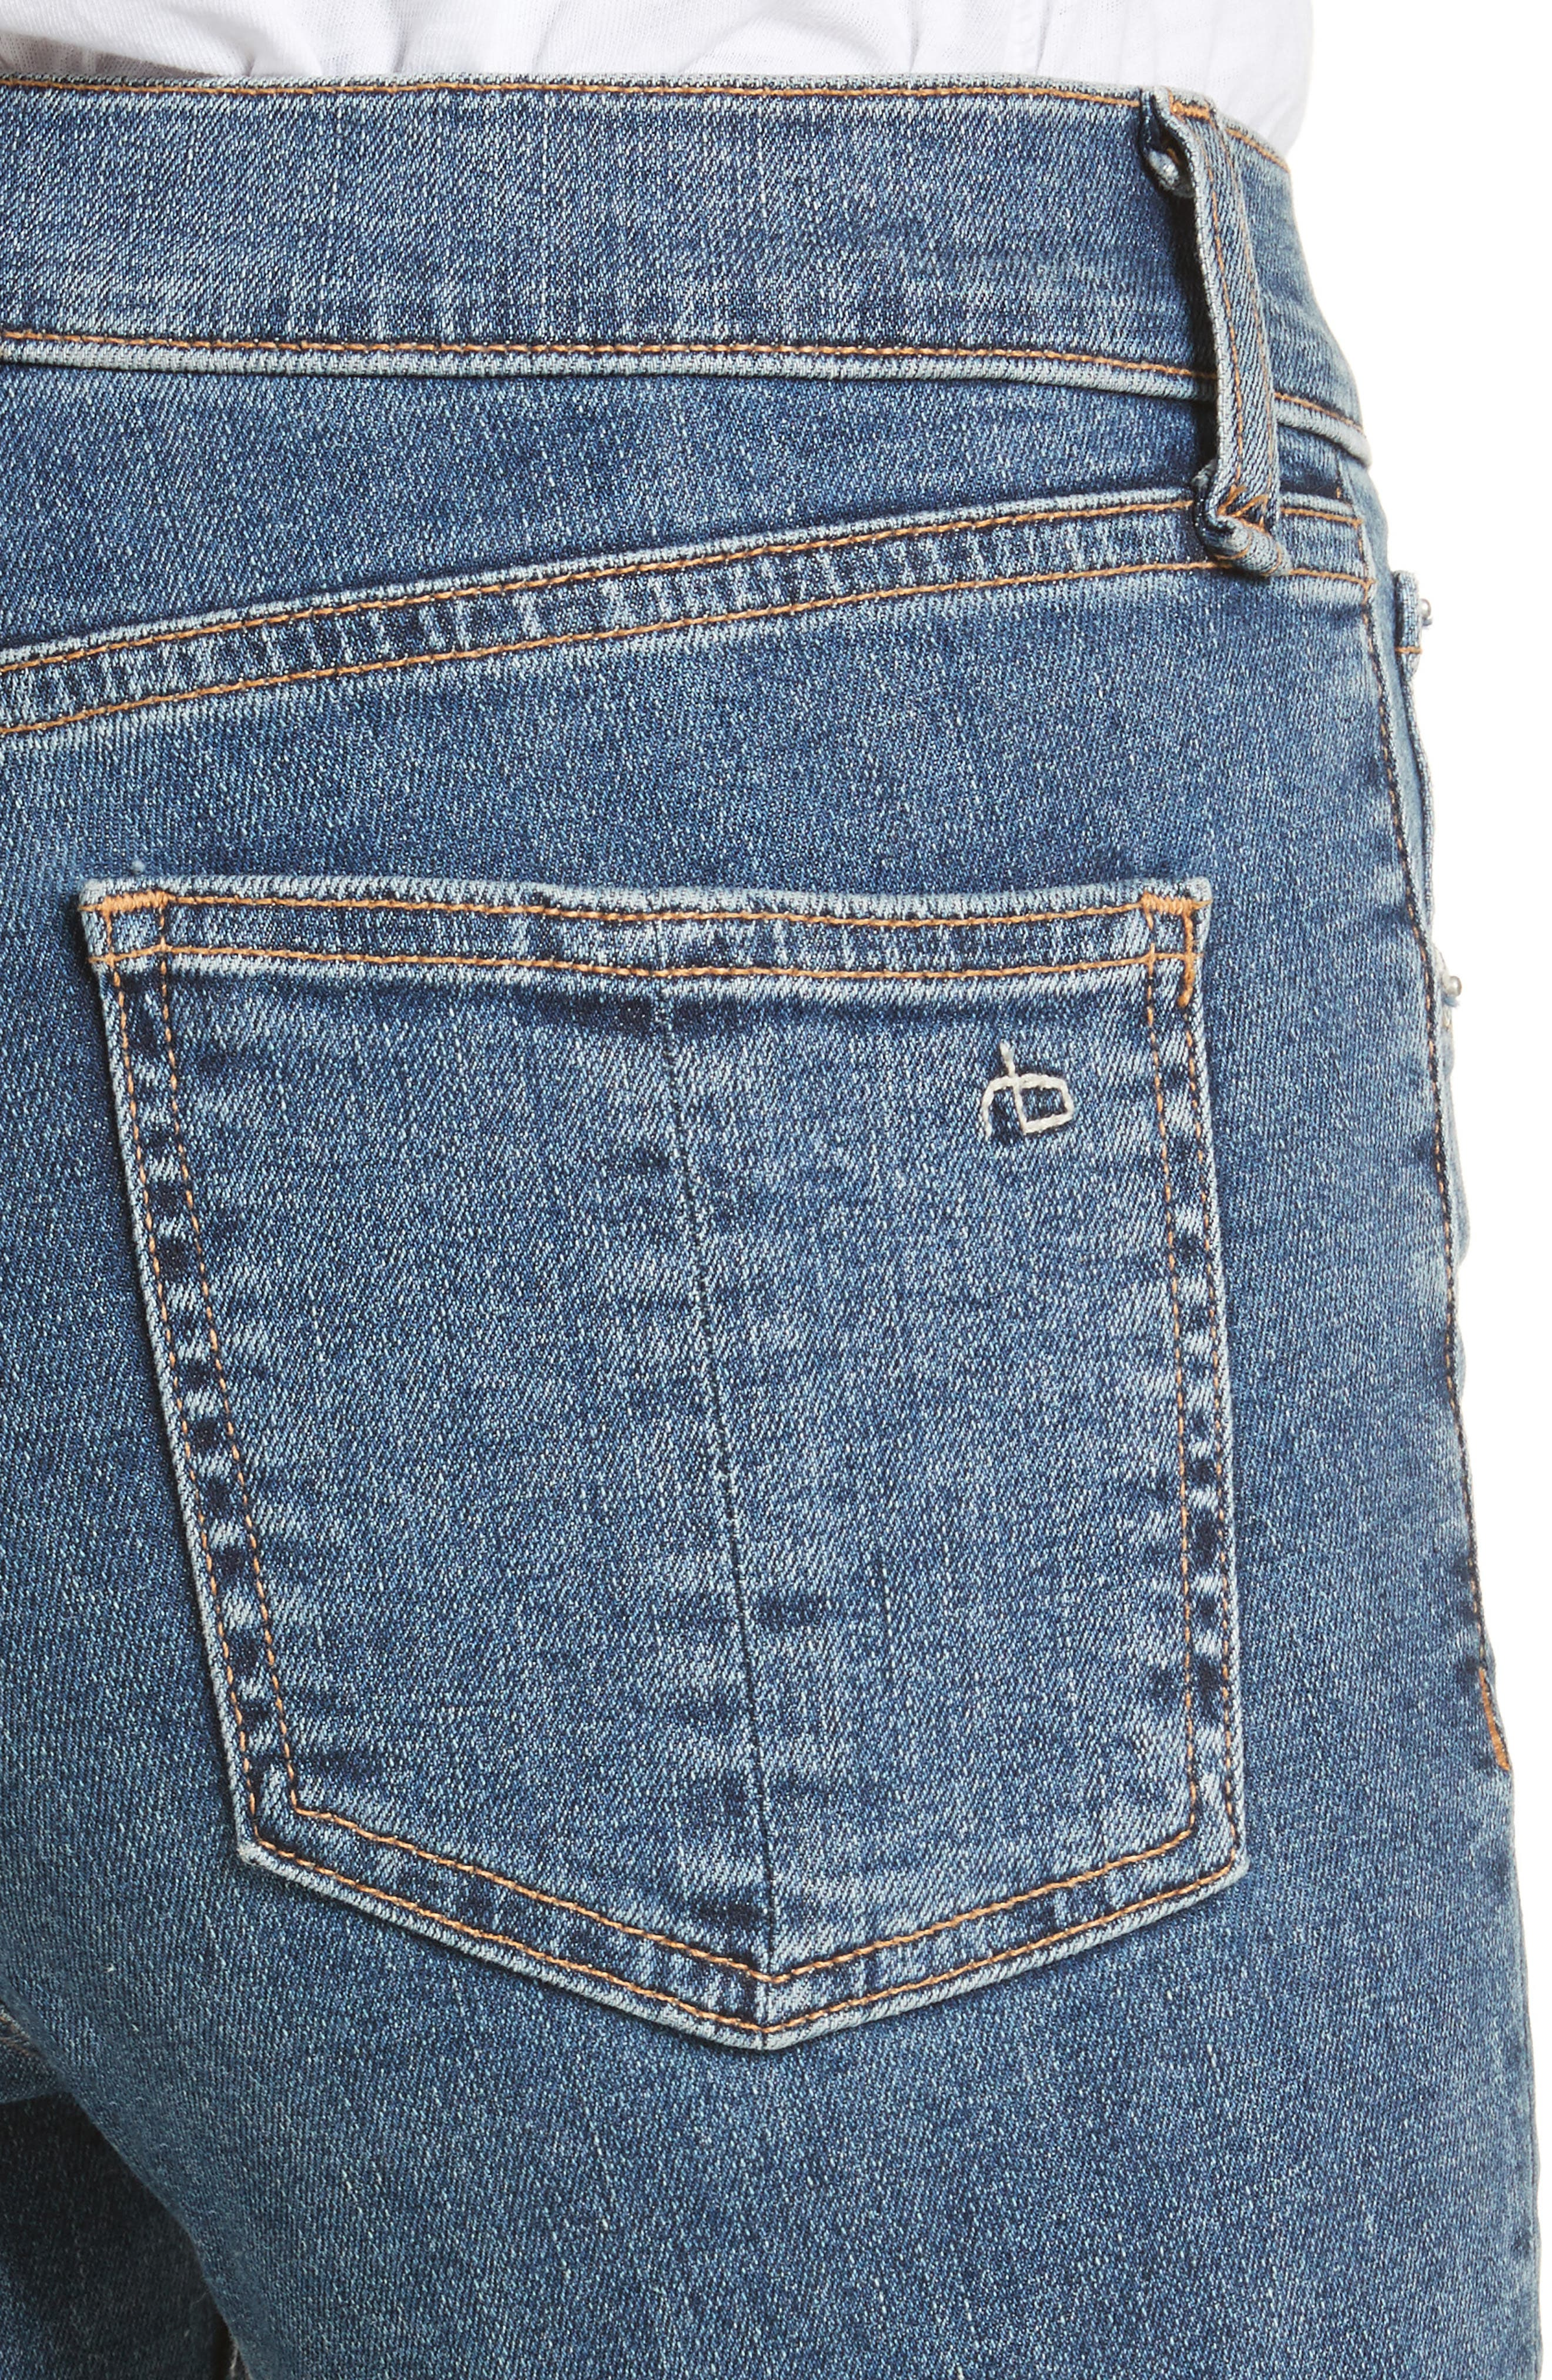 High Waist Ankle Skinny Jeans,                             Alternate thumbnail 4, color,                             Clean Commodore